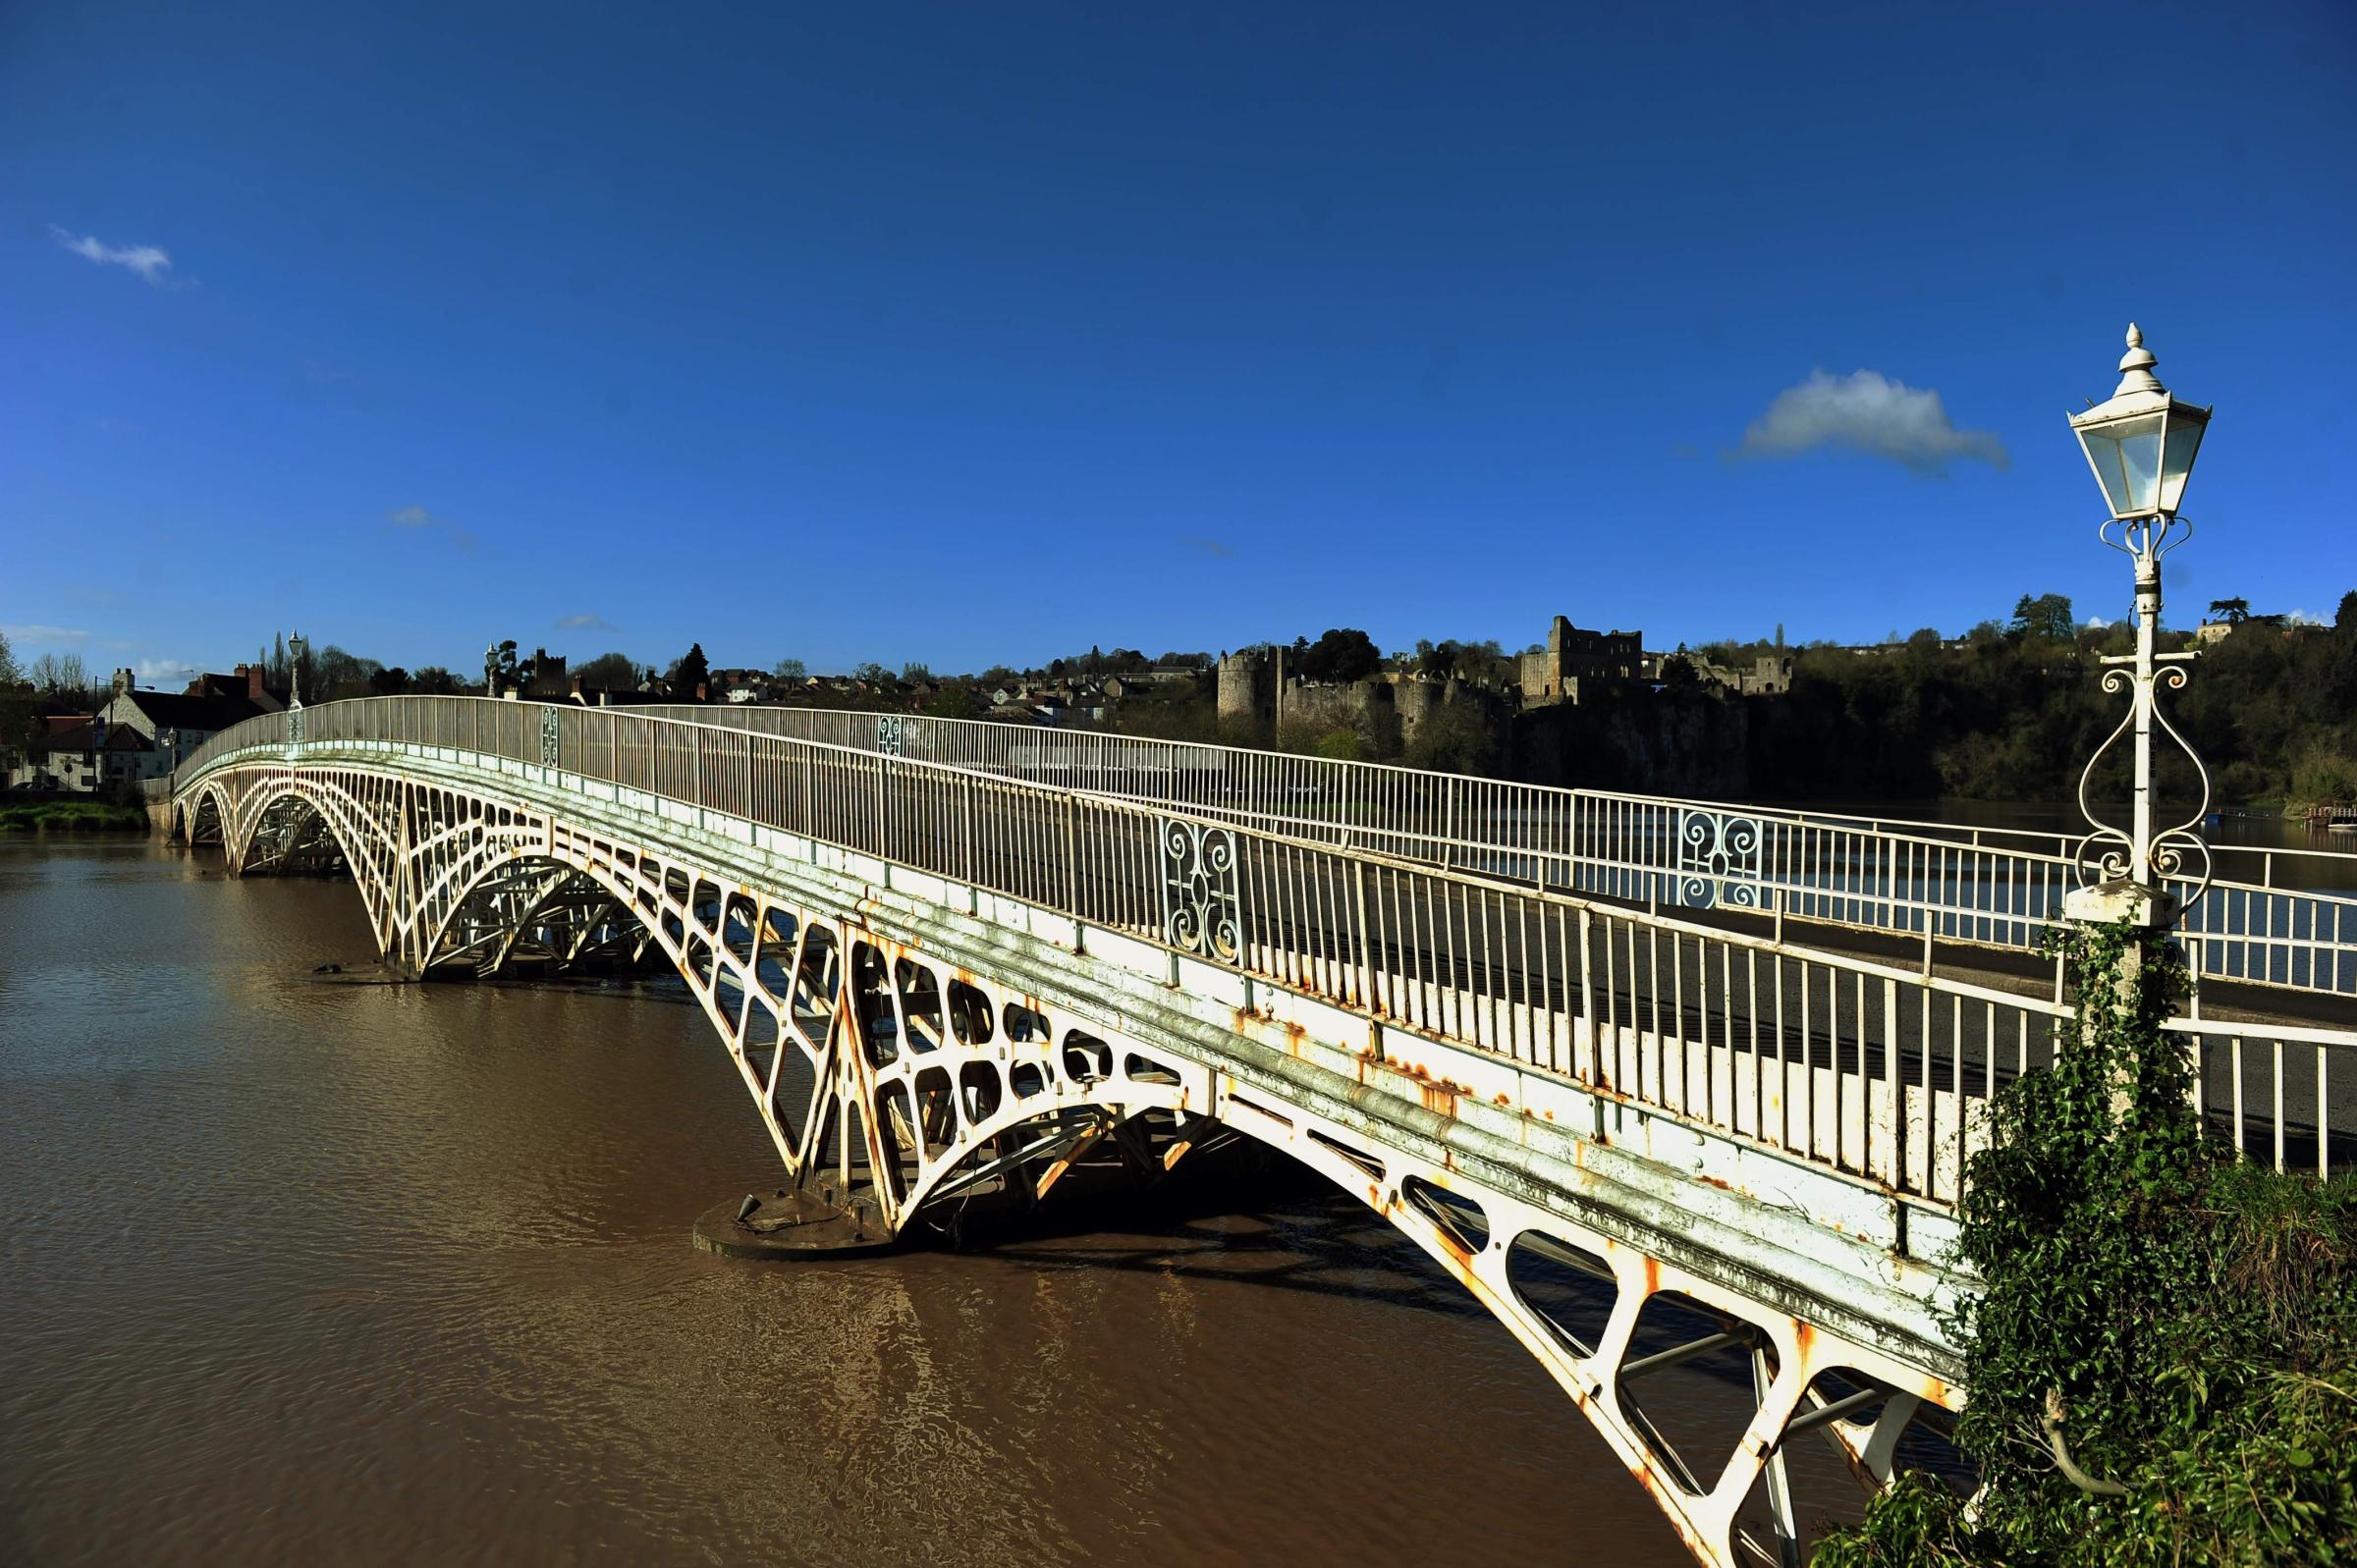 Plans for Chepstow Bridge 200th birthday